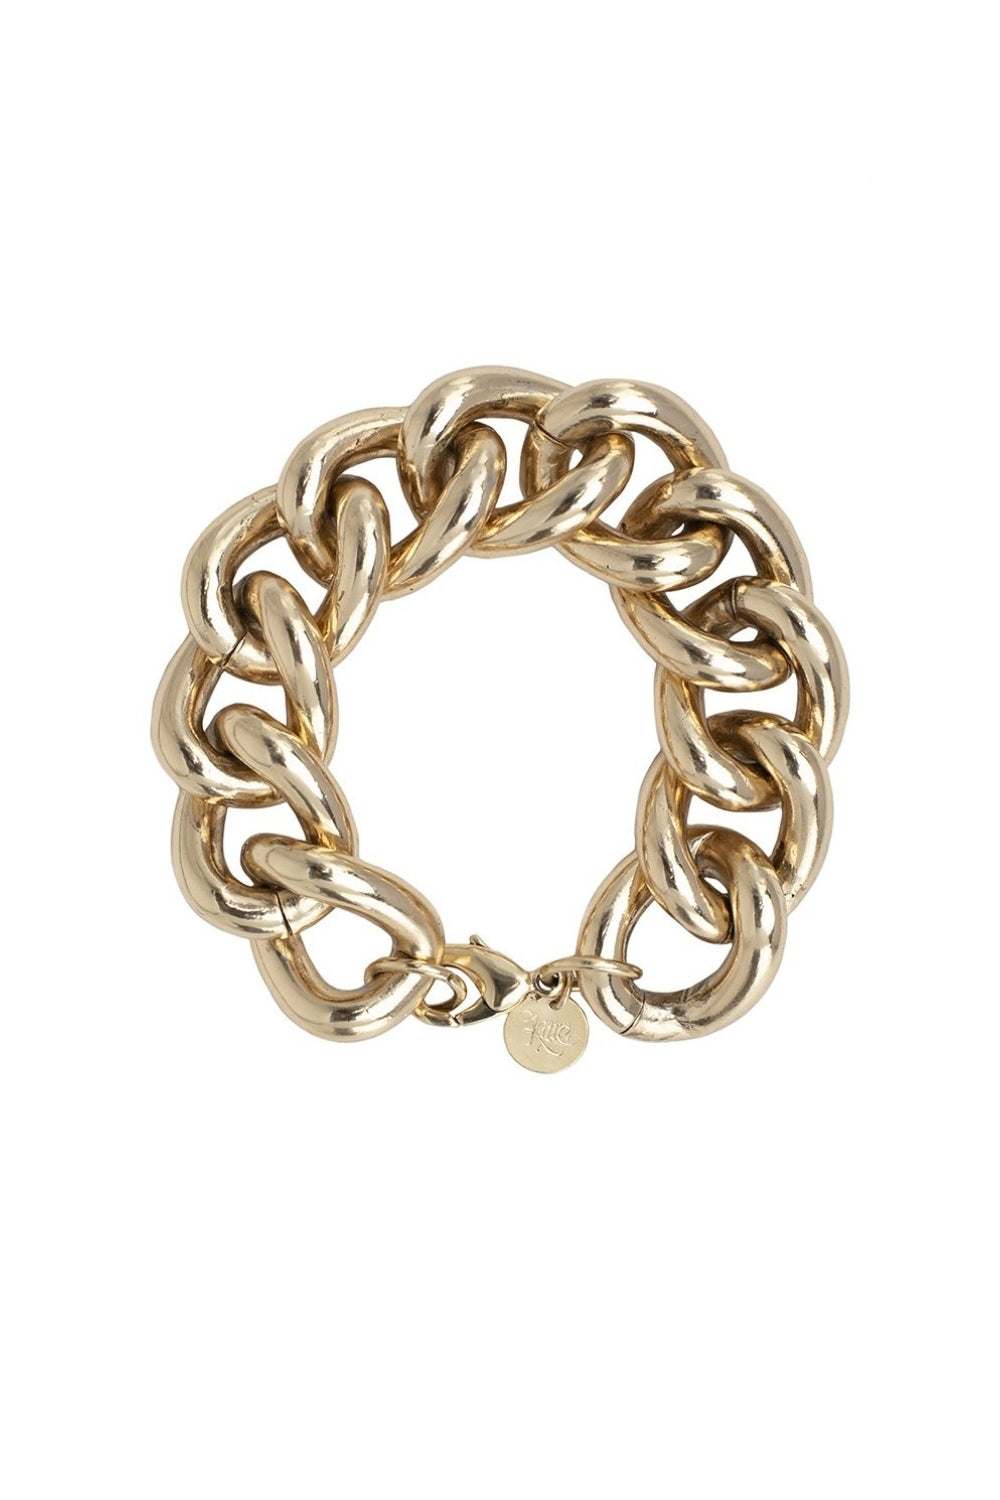 Kitte / Connextion Braclet / Gold